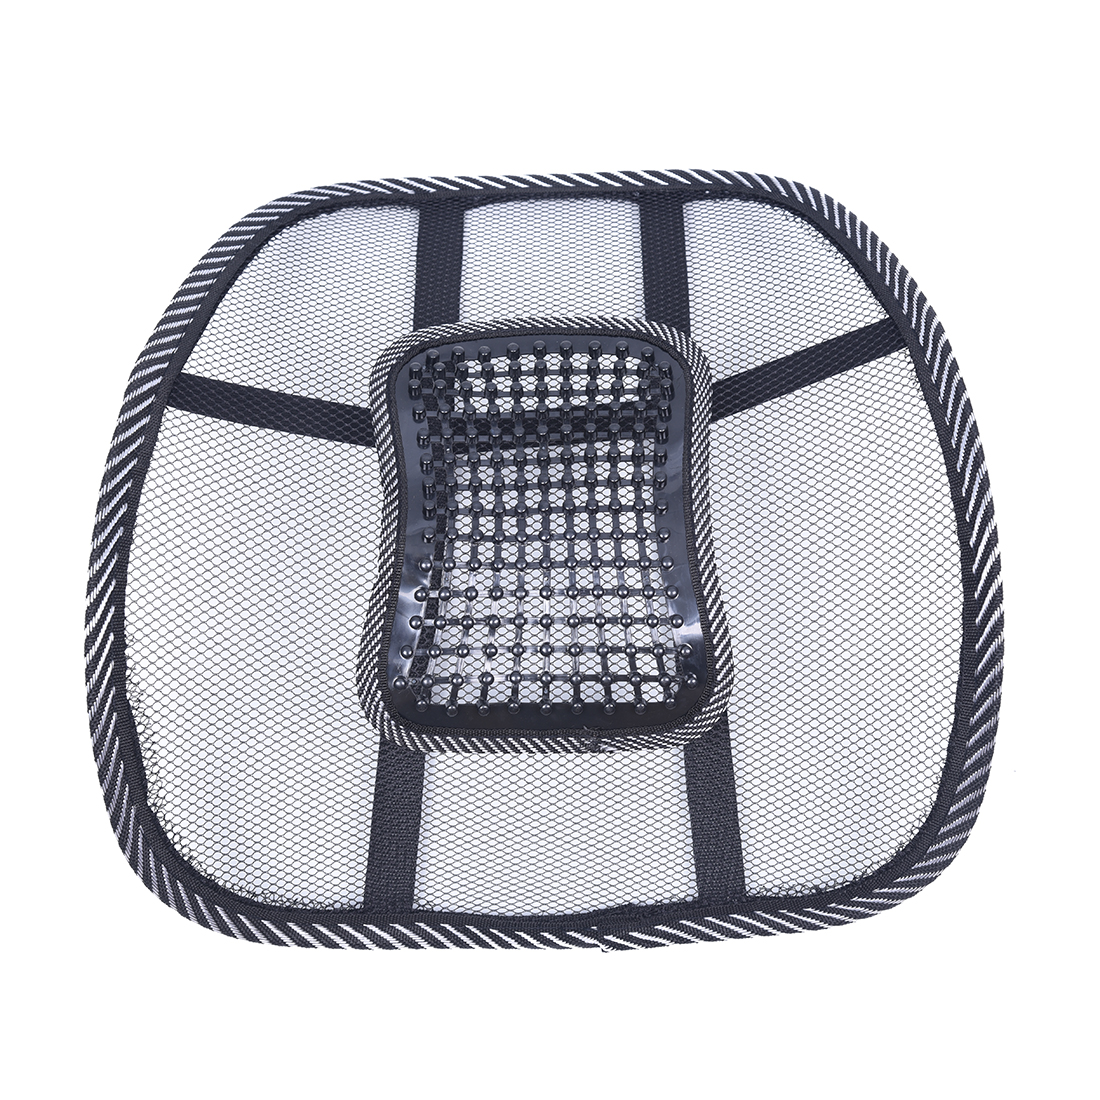 Office Chair Back Support Cushion Reviews Teak Shower Chairs Benches Car Seat Massage Lumbar Mesh